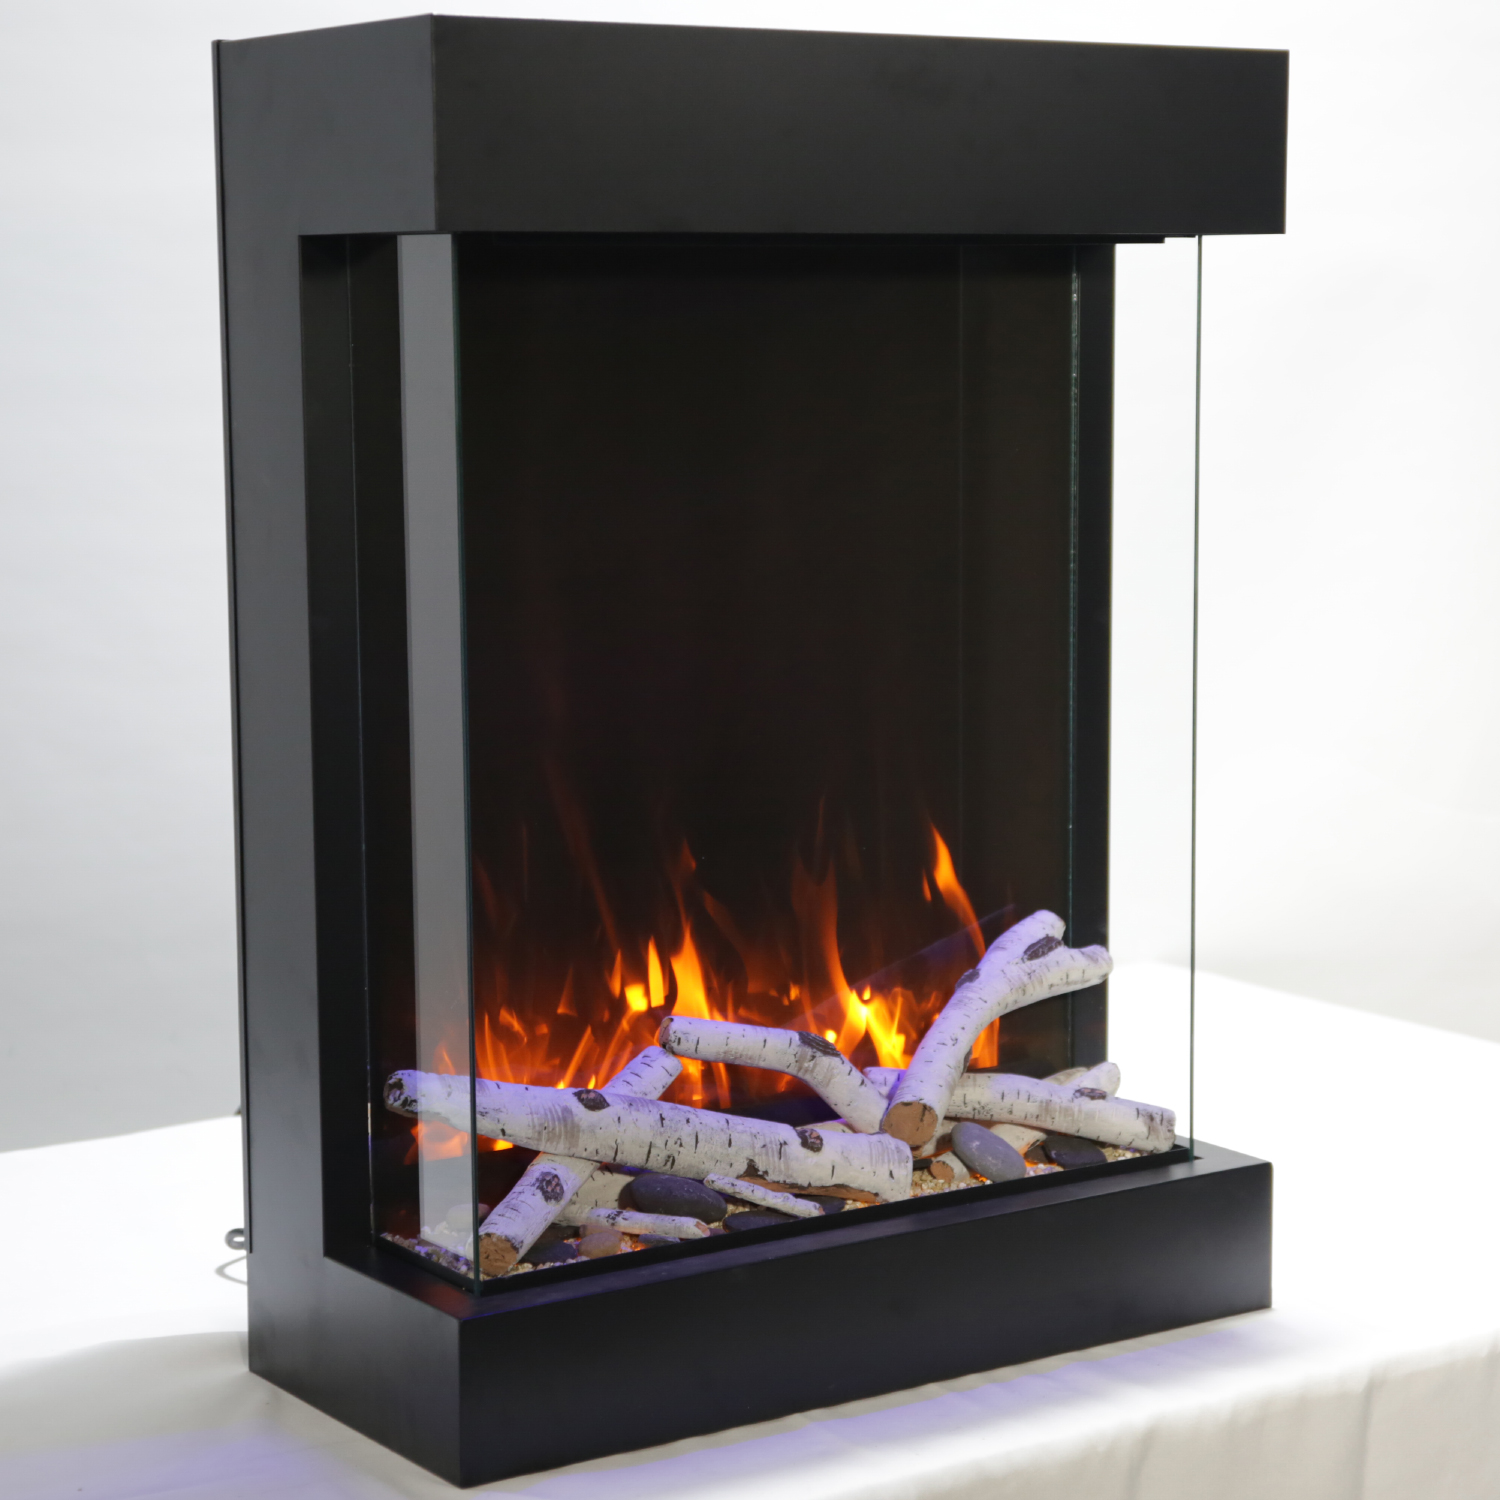 Wondrous Tru View Cube Xl 3 Sided Glass Electric Fireplace By Amantii Download Free Architecture Designs Rallybritishbridgeorg